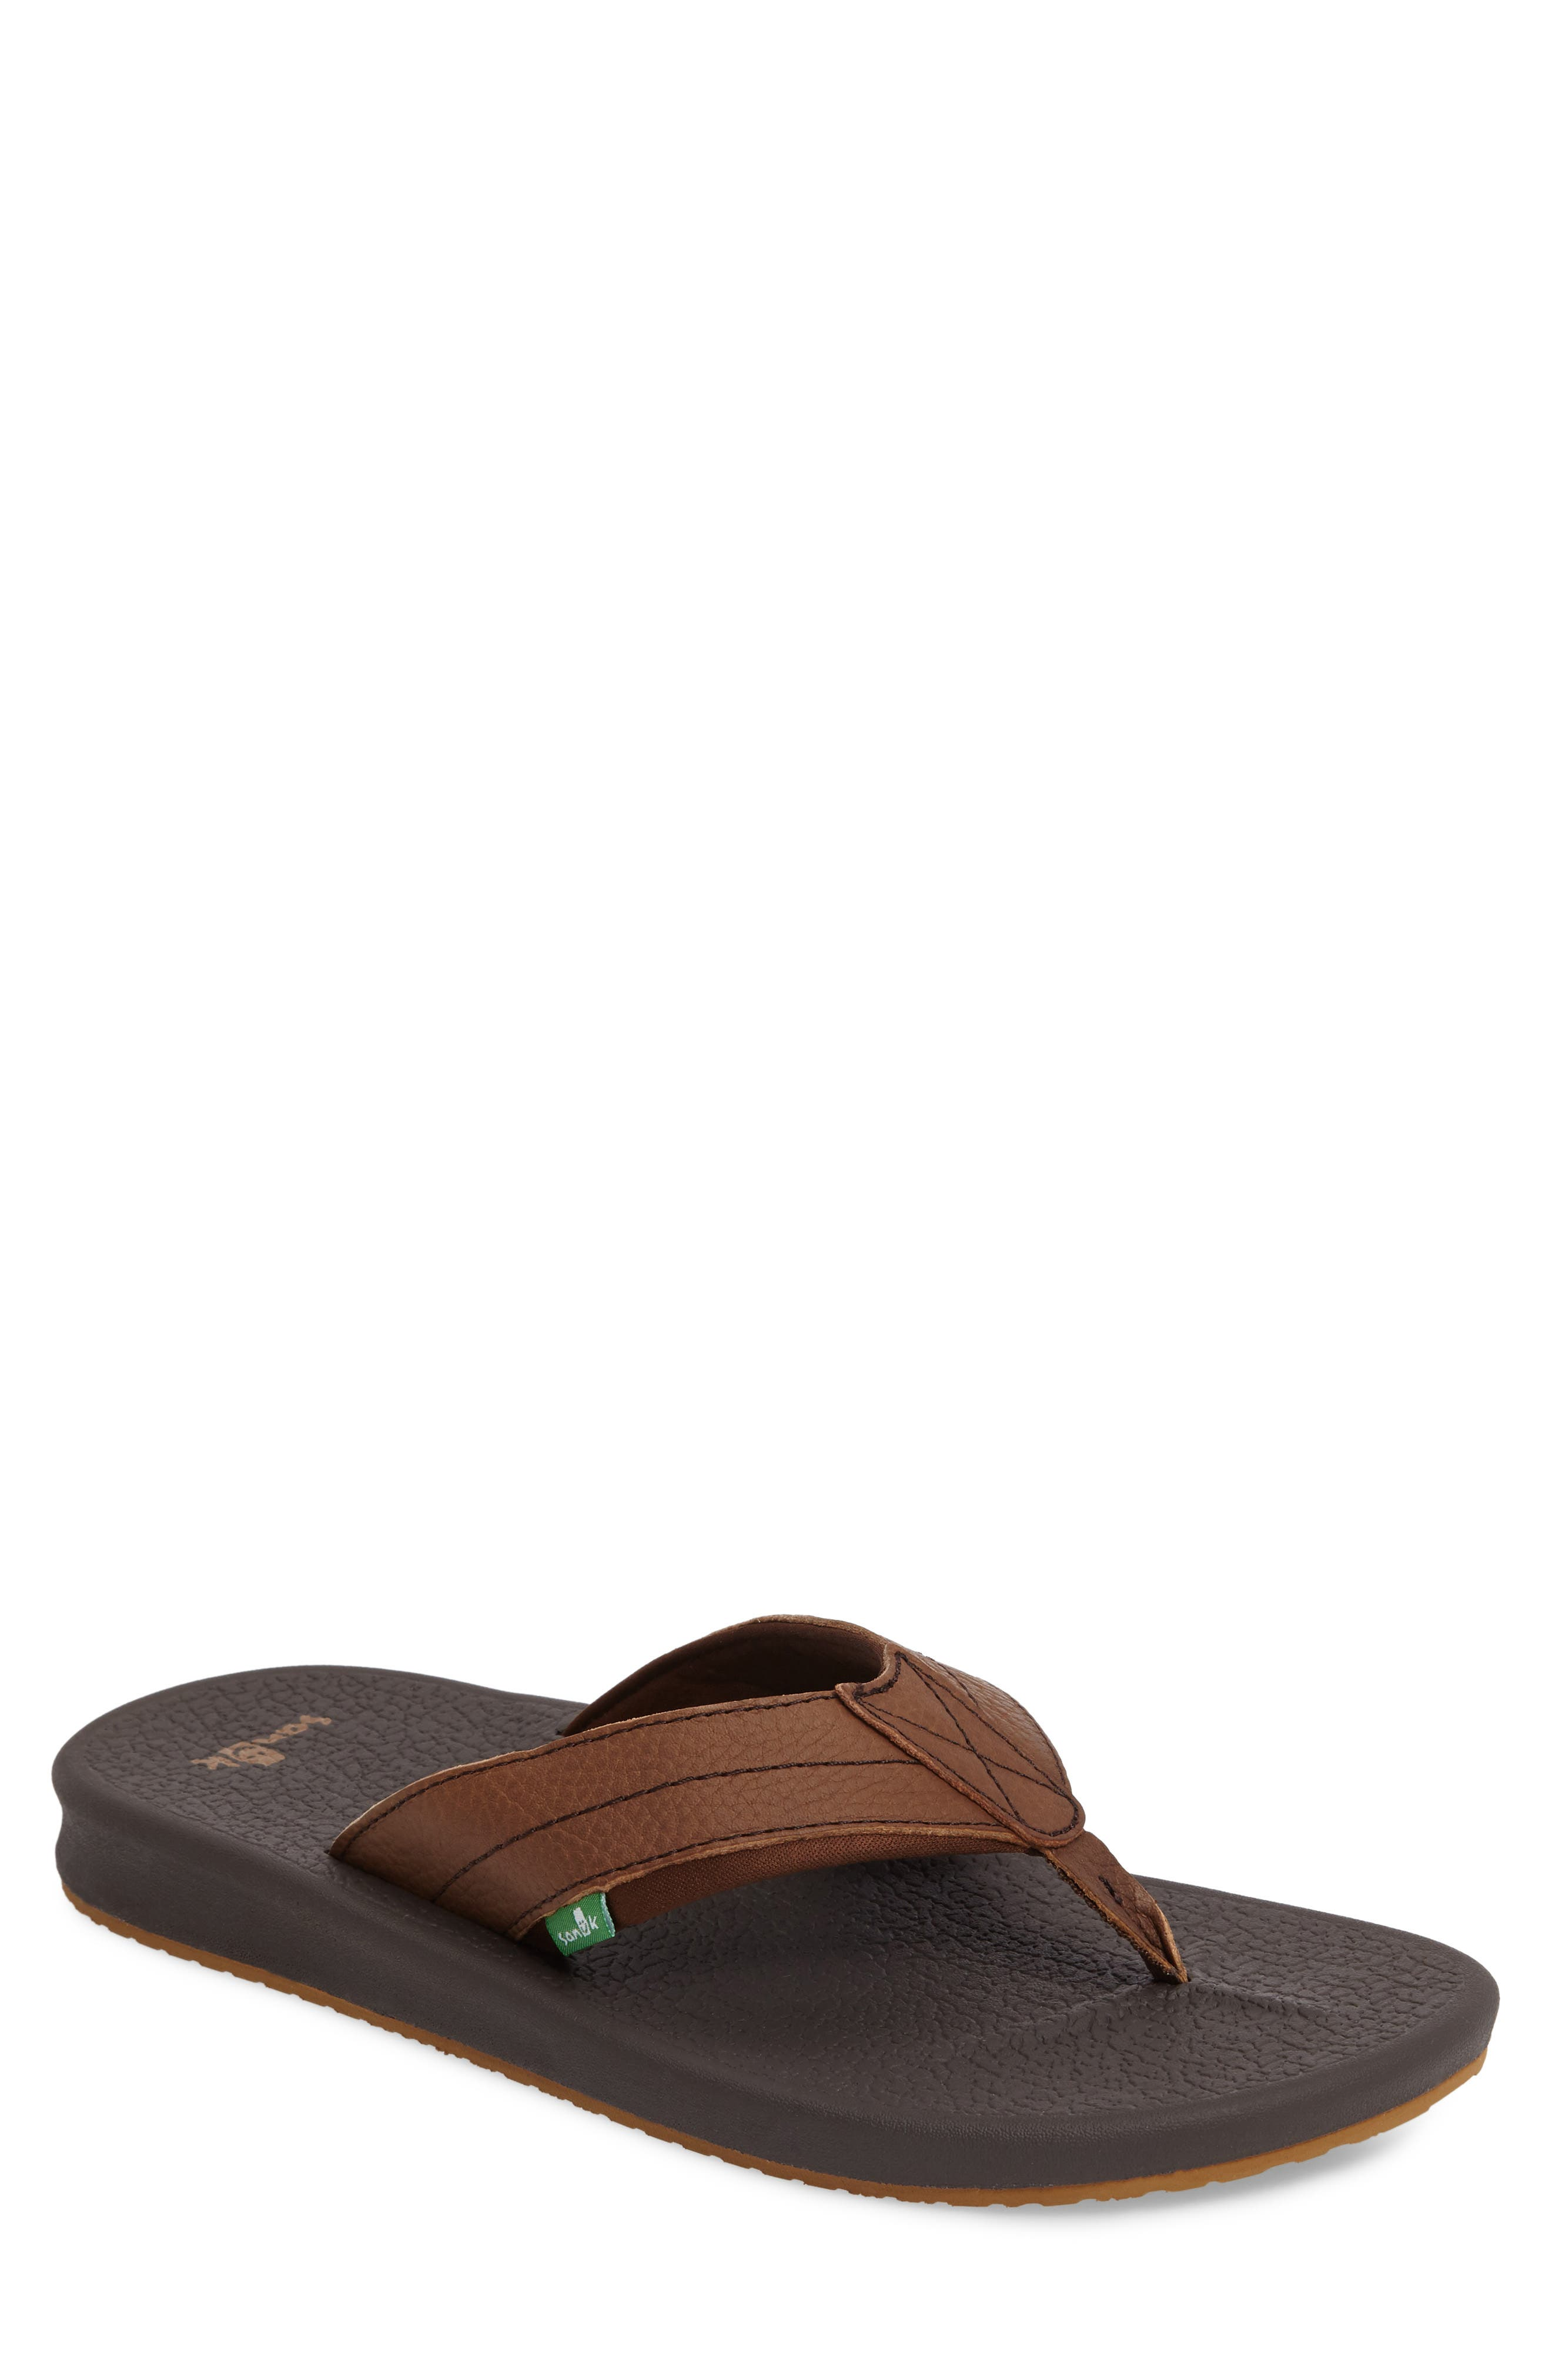 Brumesiter Primo Flip Flop,                             Main thumbnail 1, color,                             Brown Leather